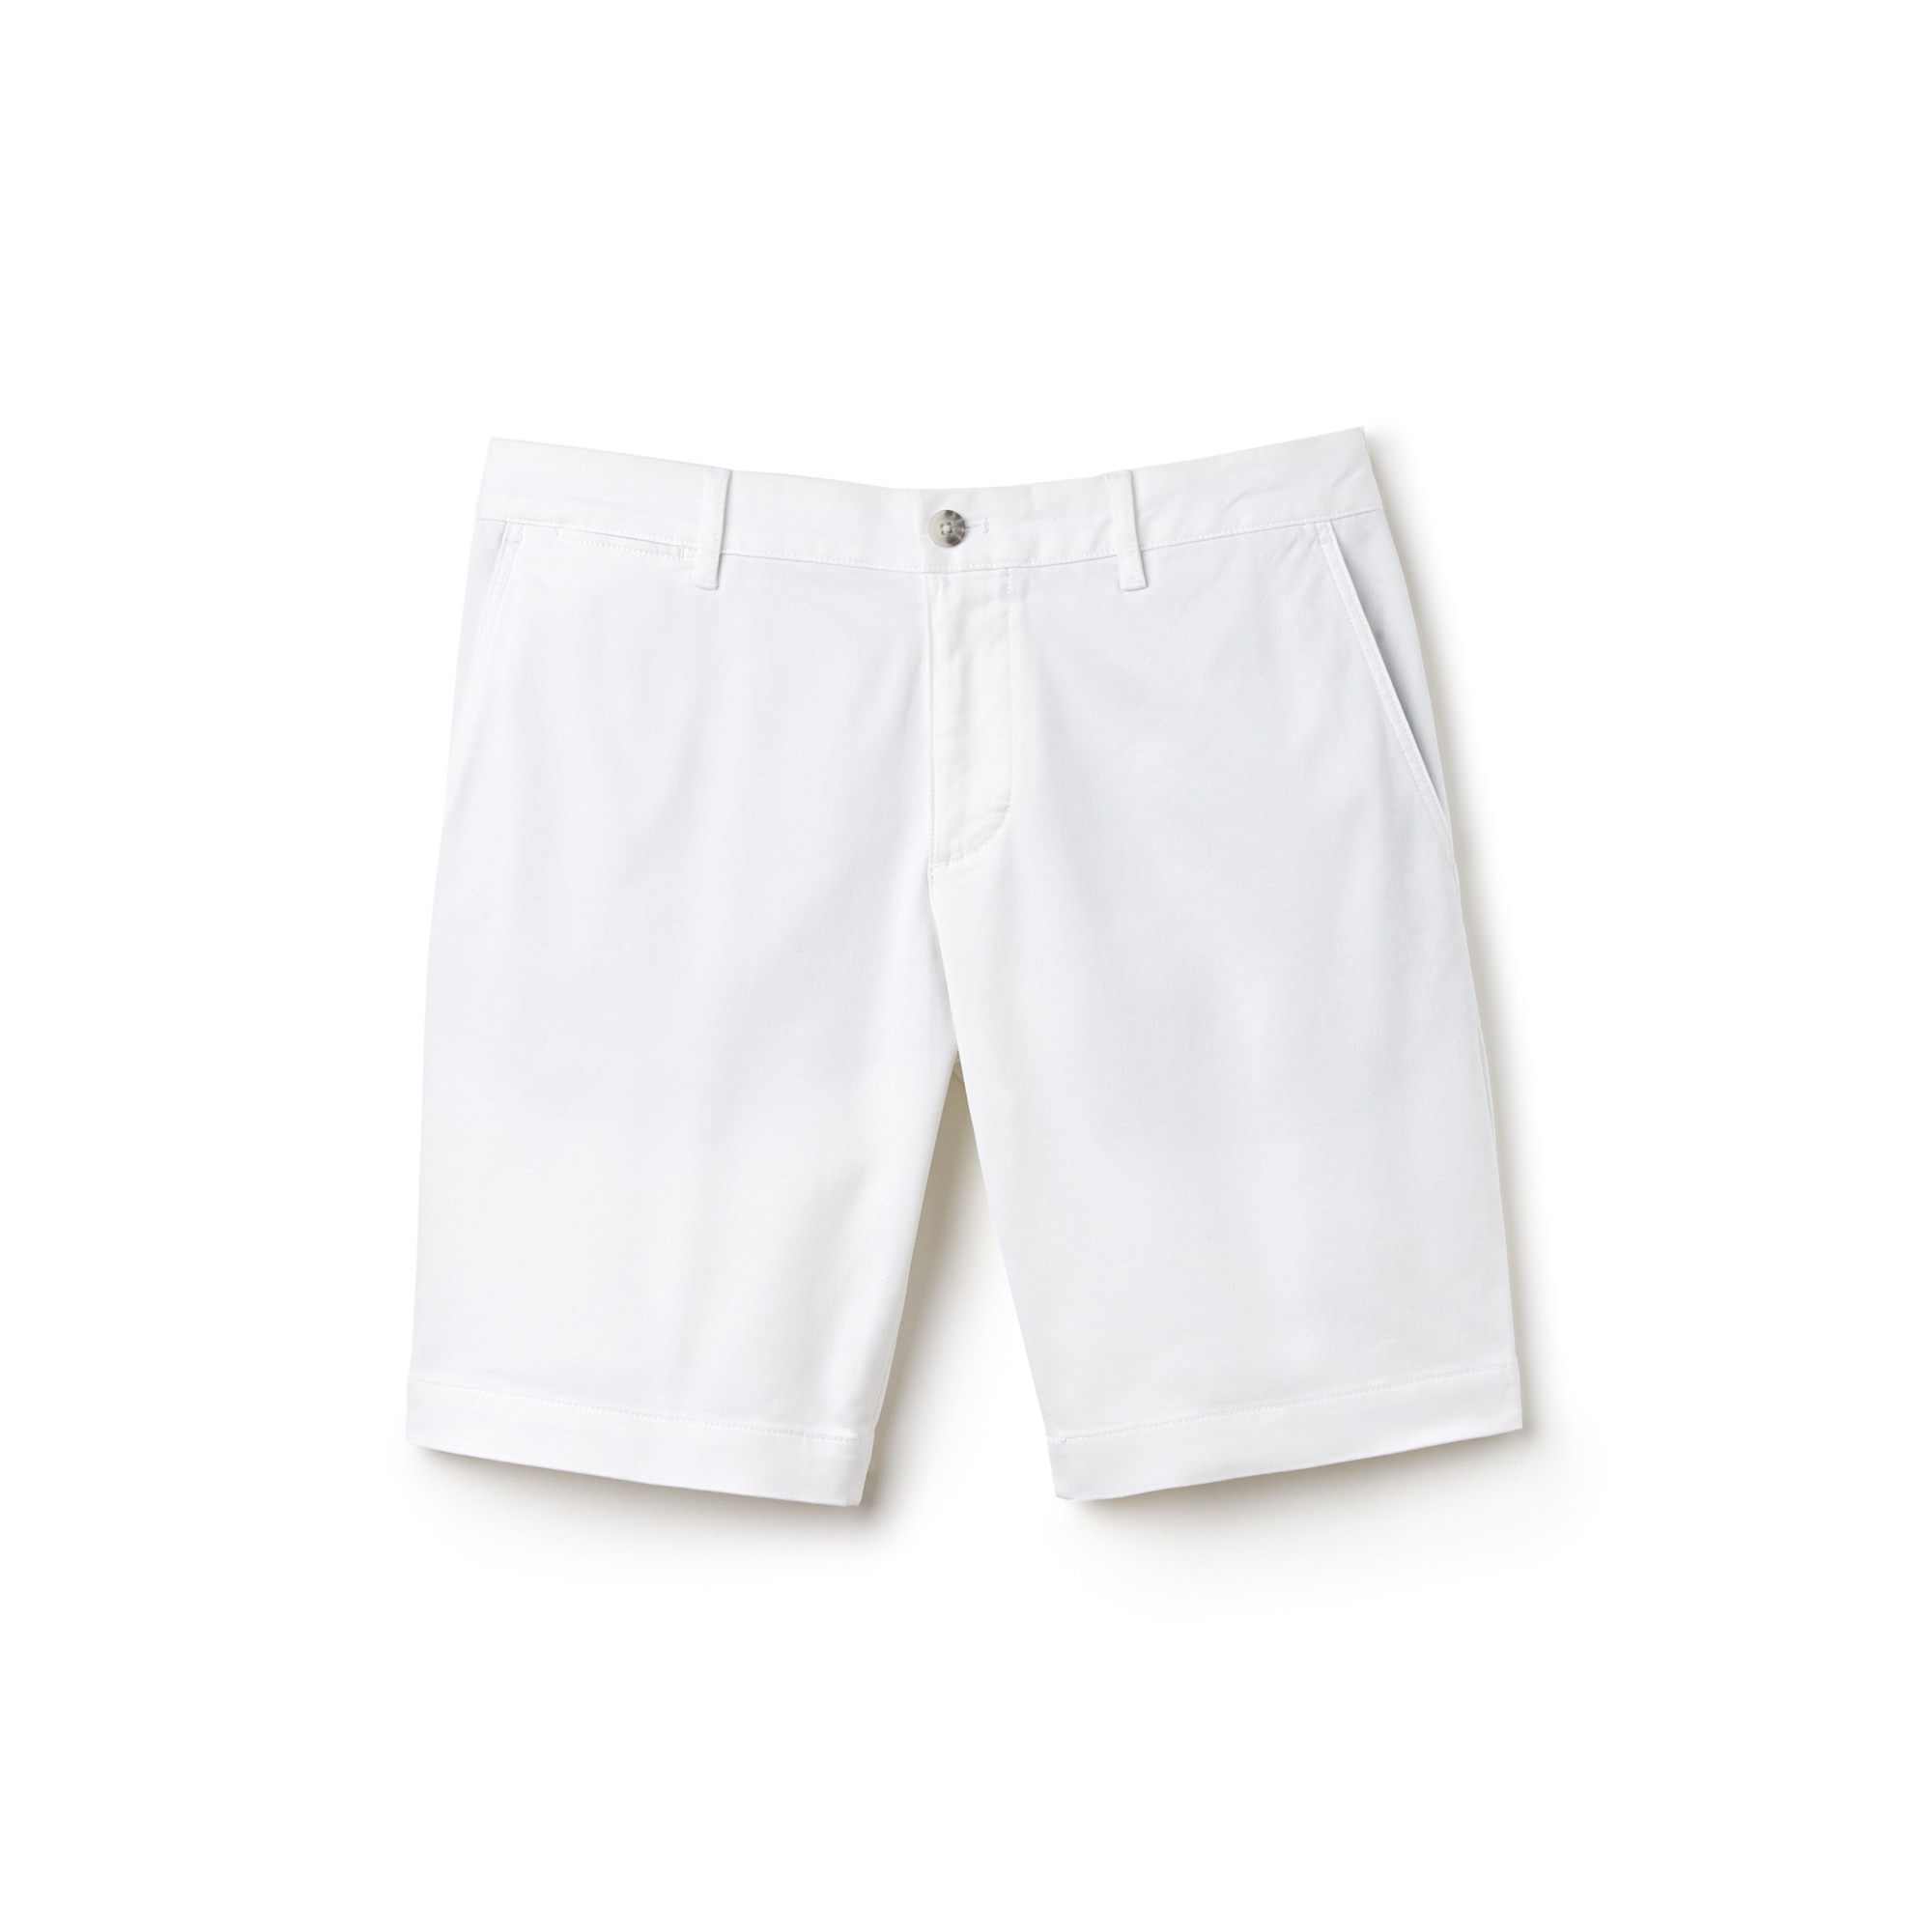 Men's Slim Fit Stretch Bermuda Shorts